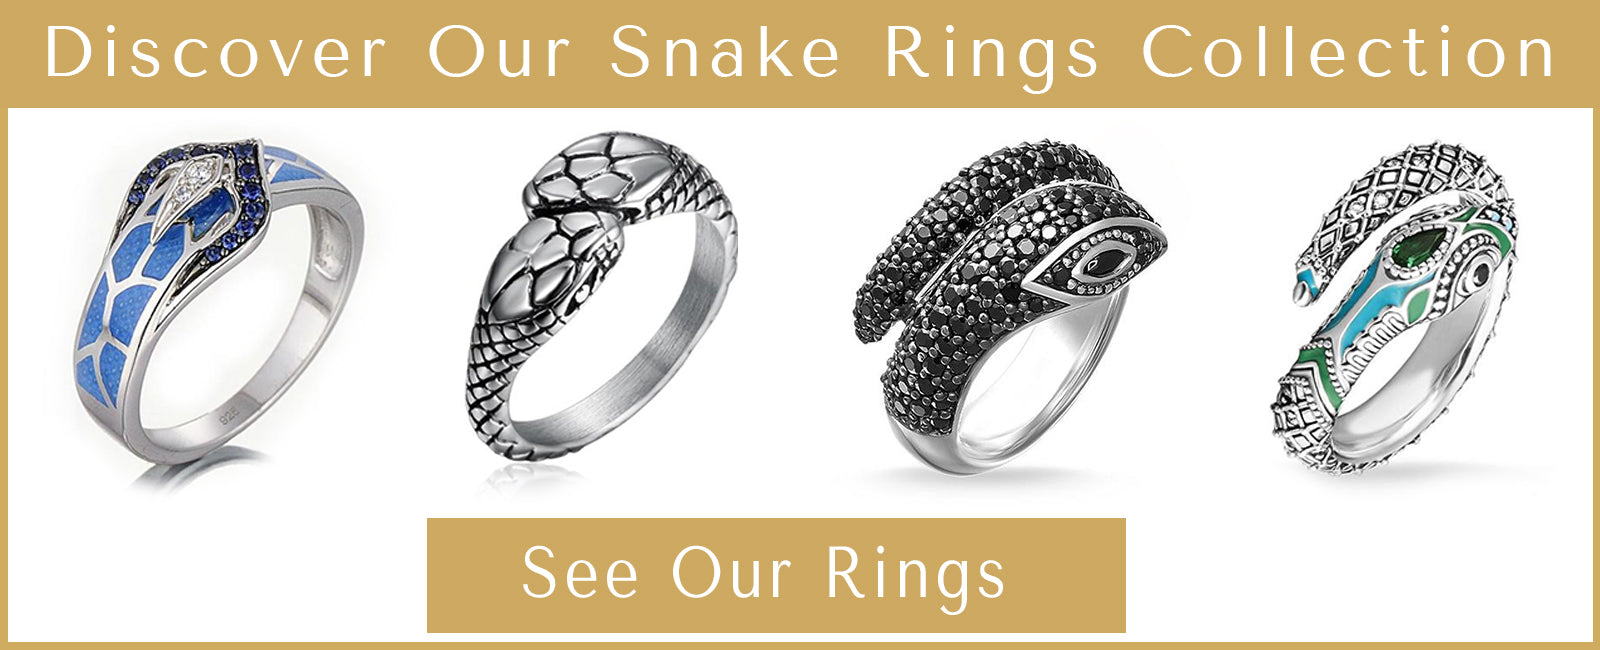 Snake Rings Collection Presentation